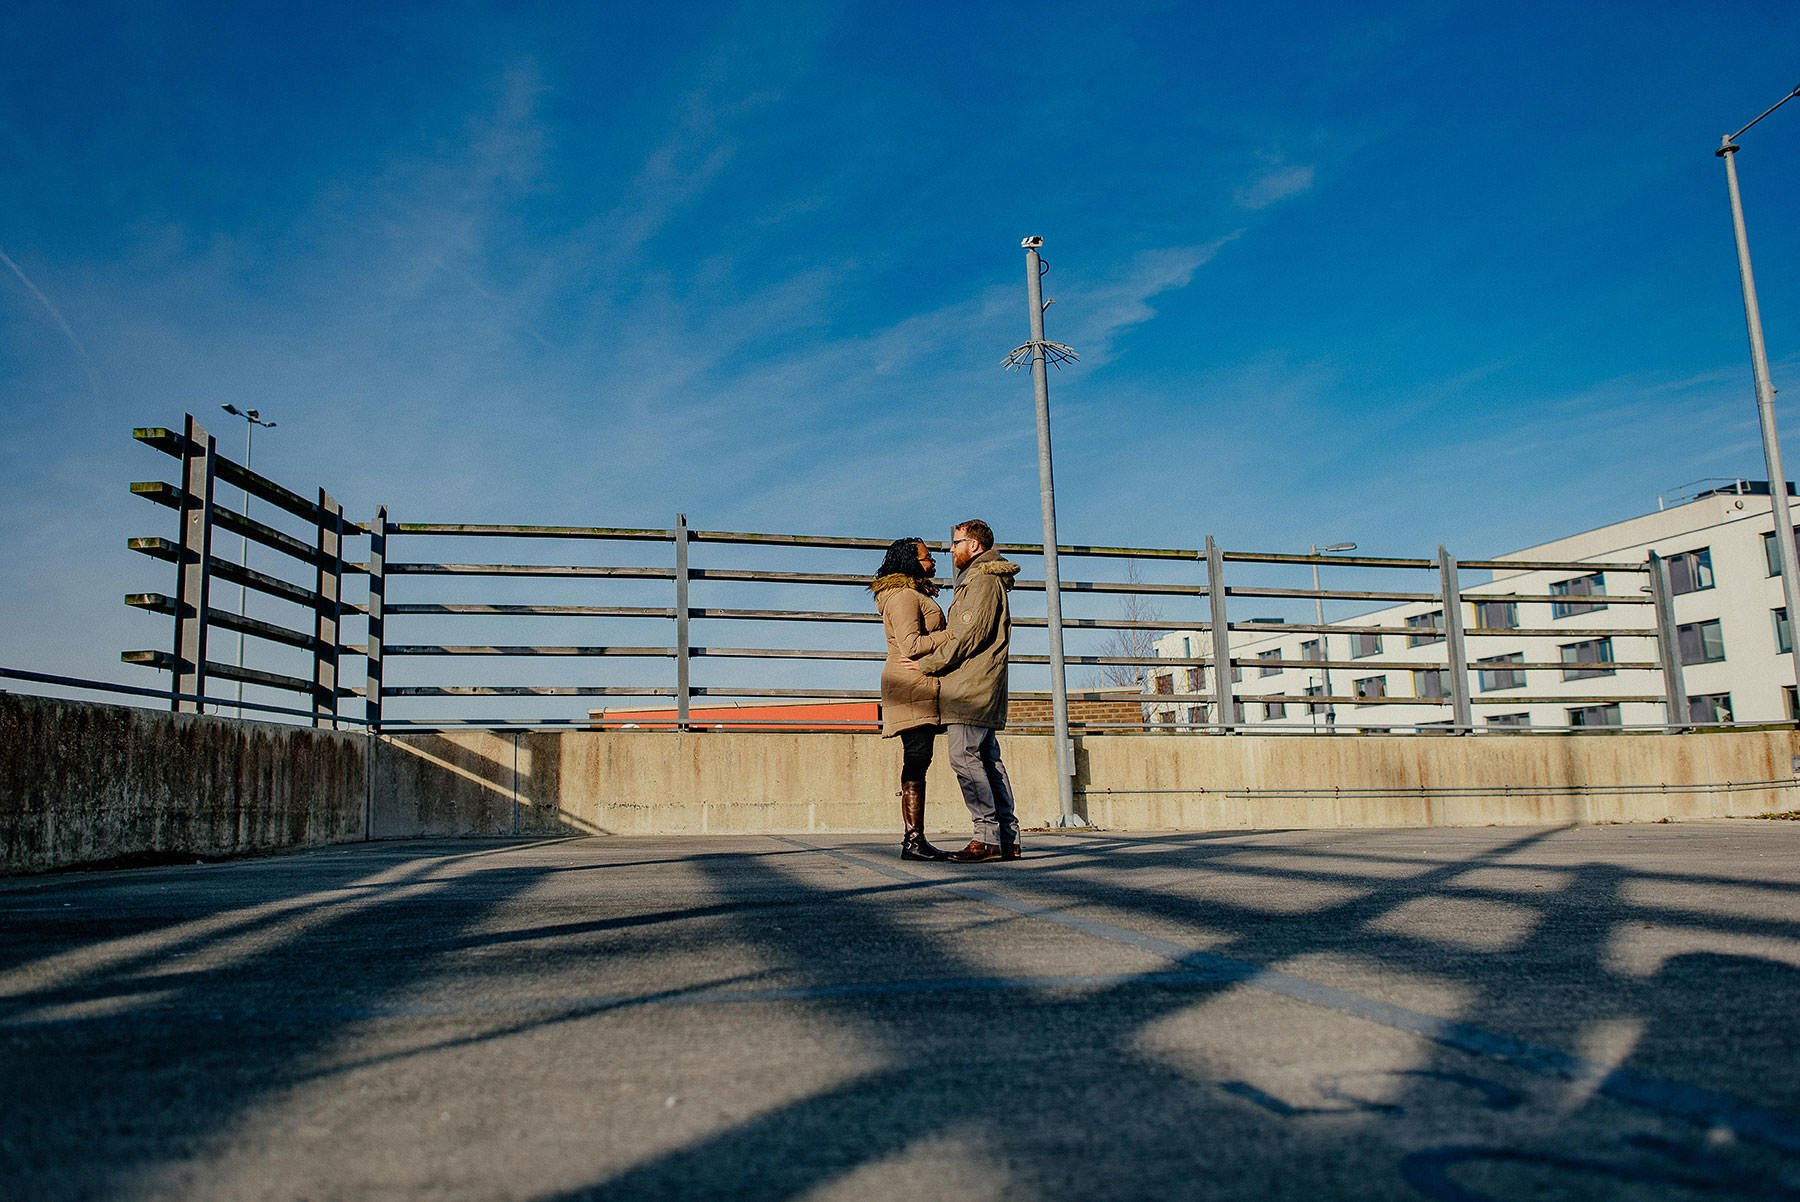 an urban pre wedding shoot in Brighton, a brighton pre wedding shoot